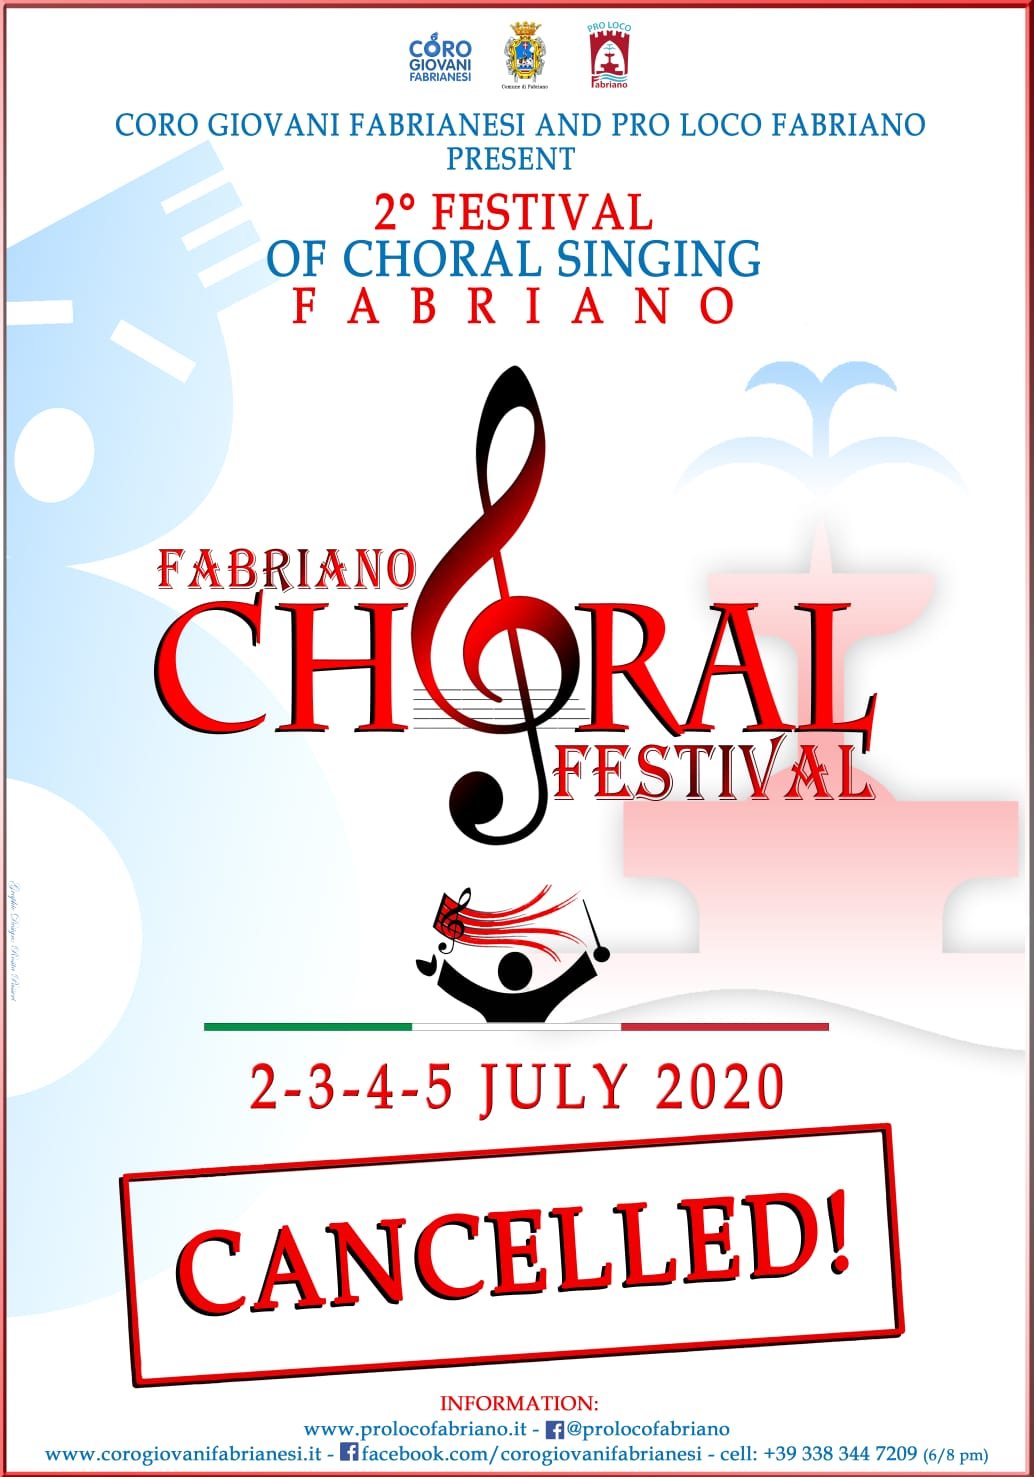 Fabriano Choral Festival cancelled